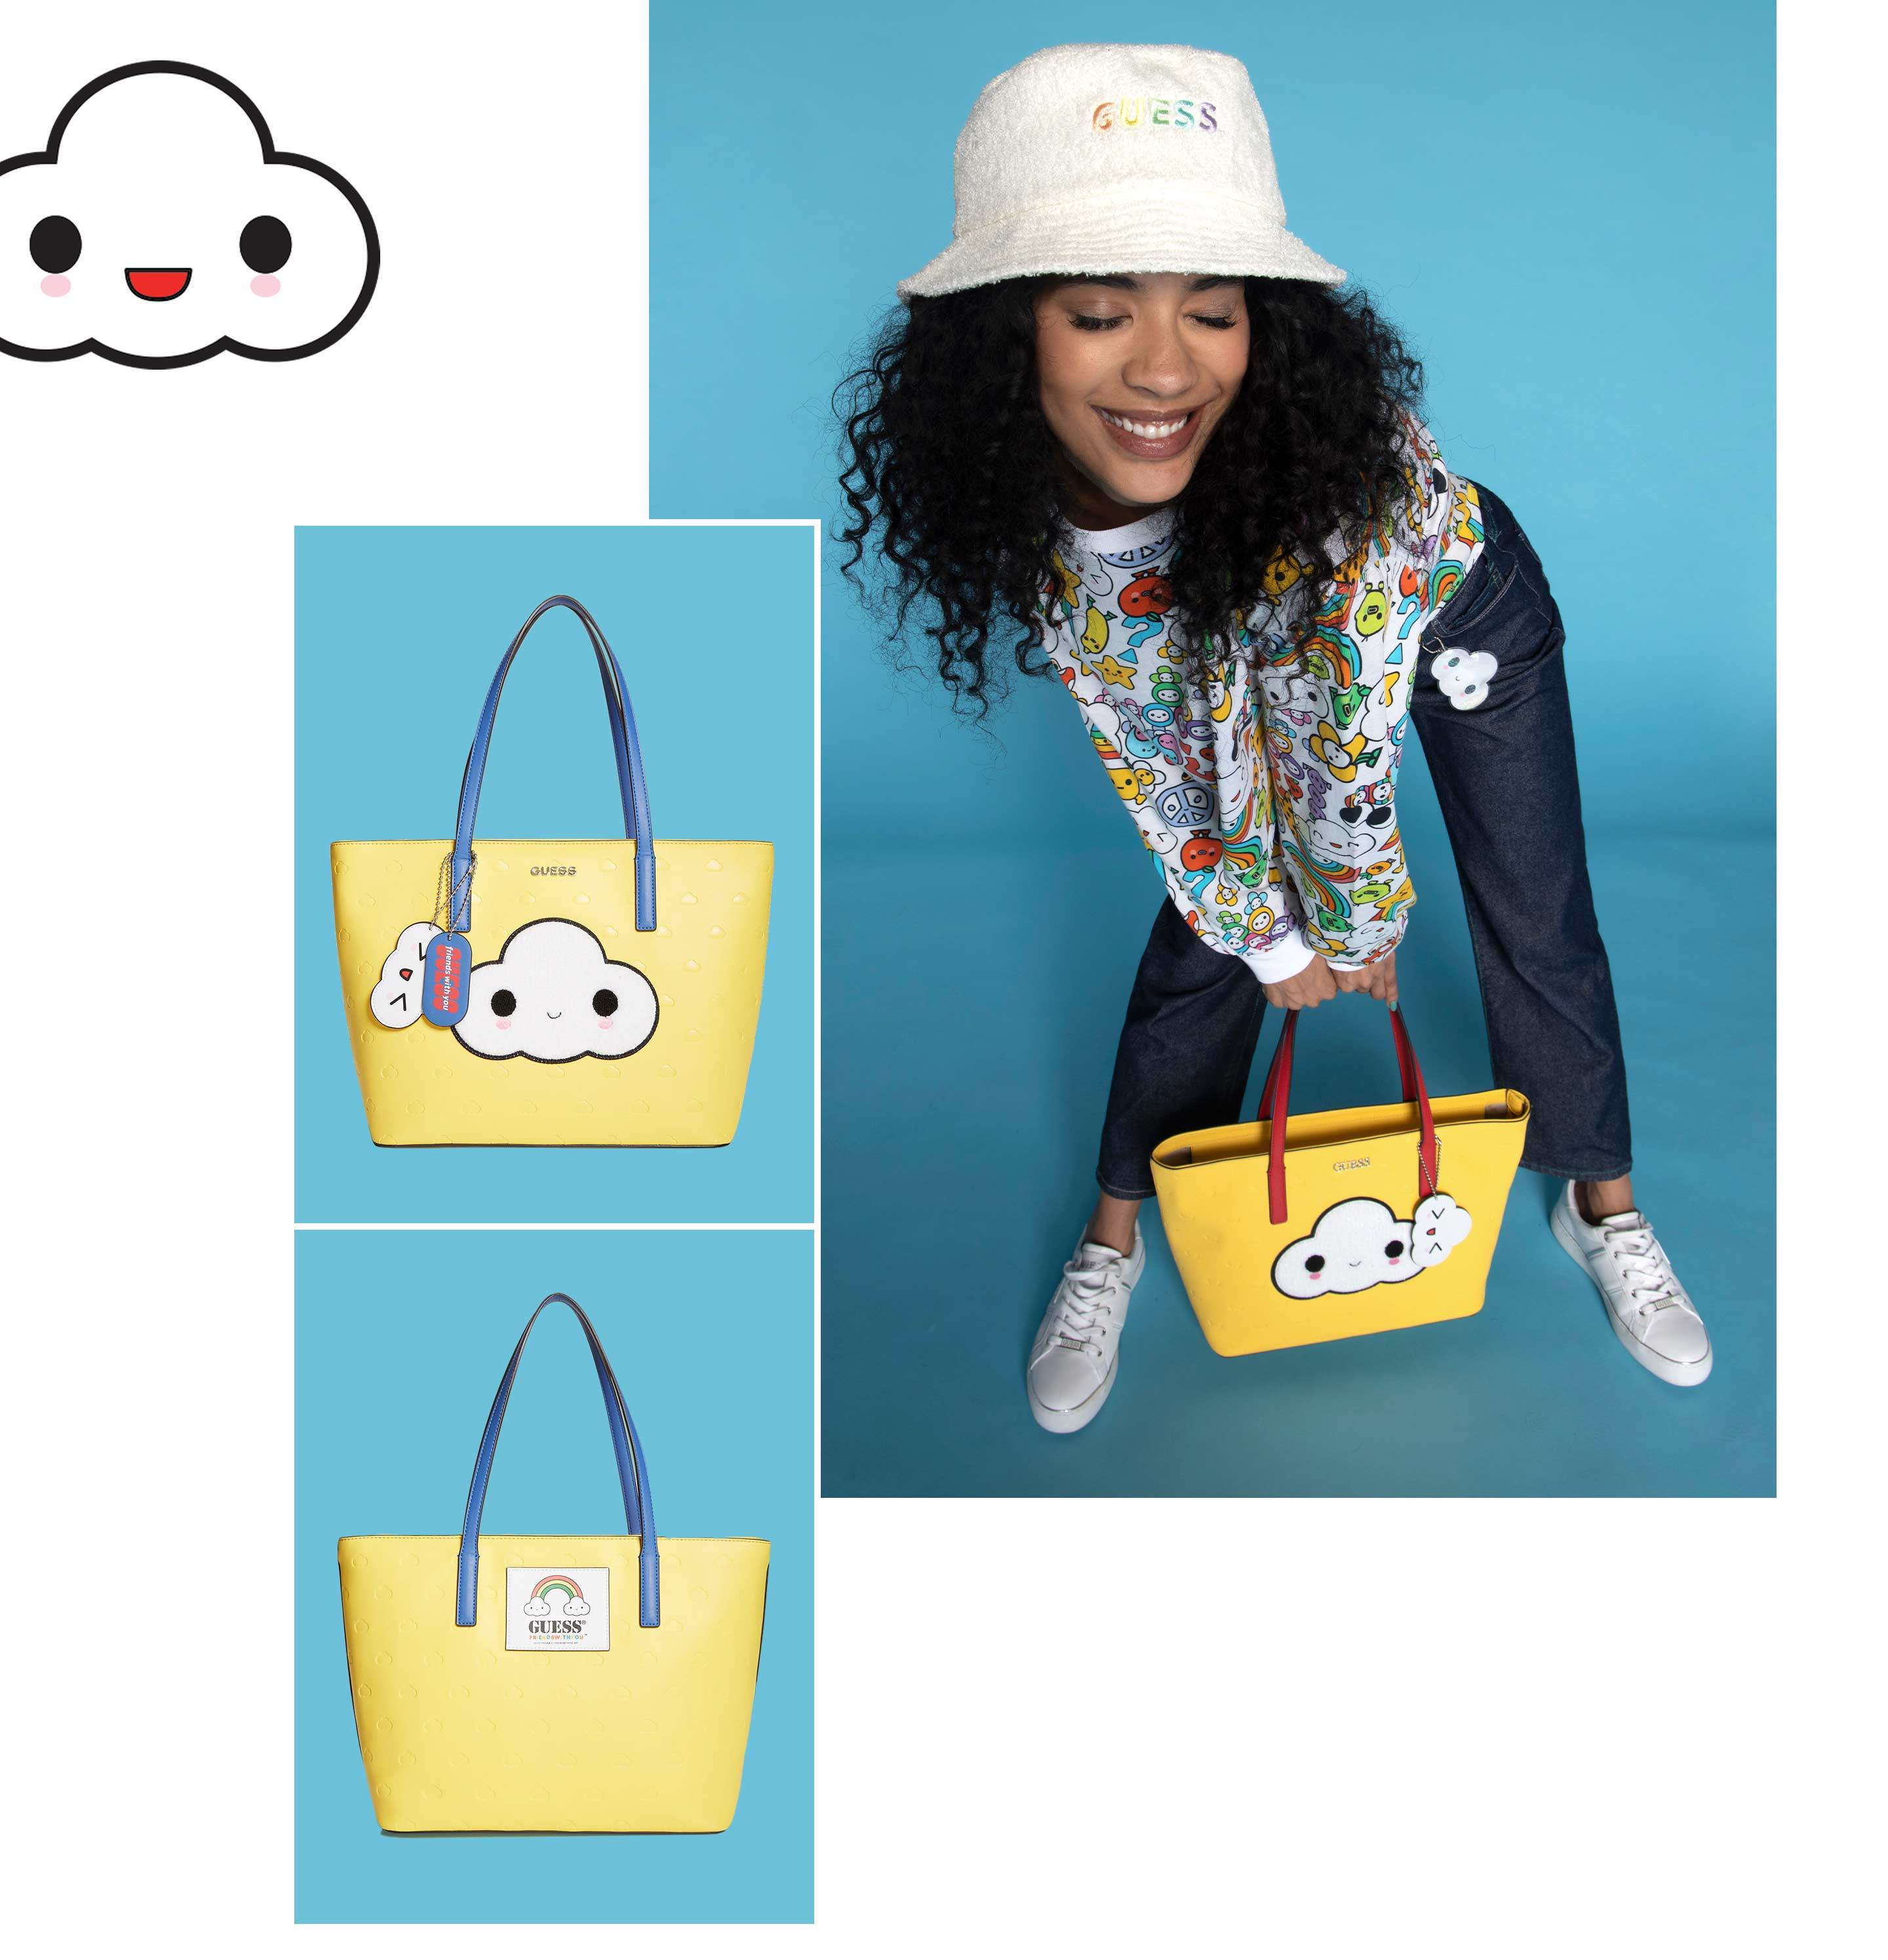 Guess friendswithyou yellow cloud tote bag